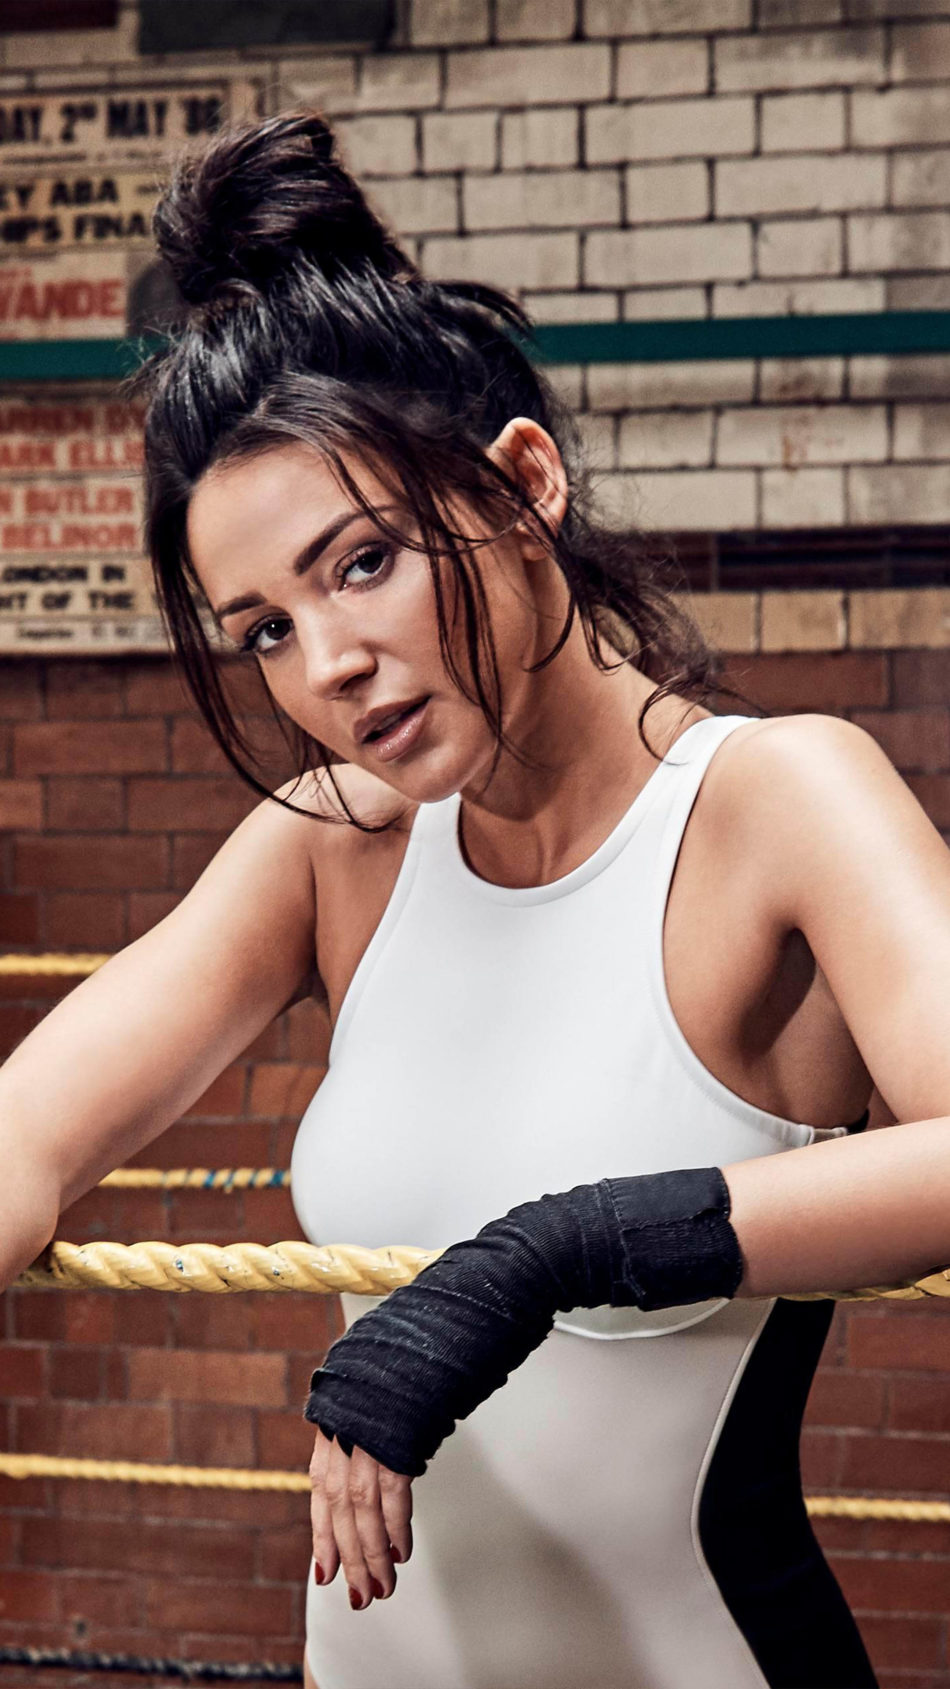 Michelle Keegan Fitness Fighting Ring 4K Ultra HD Mobile Wallpaper